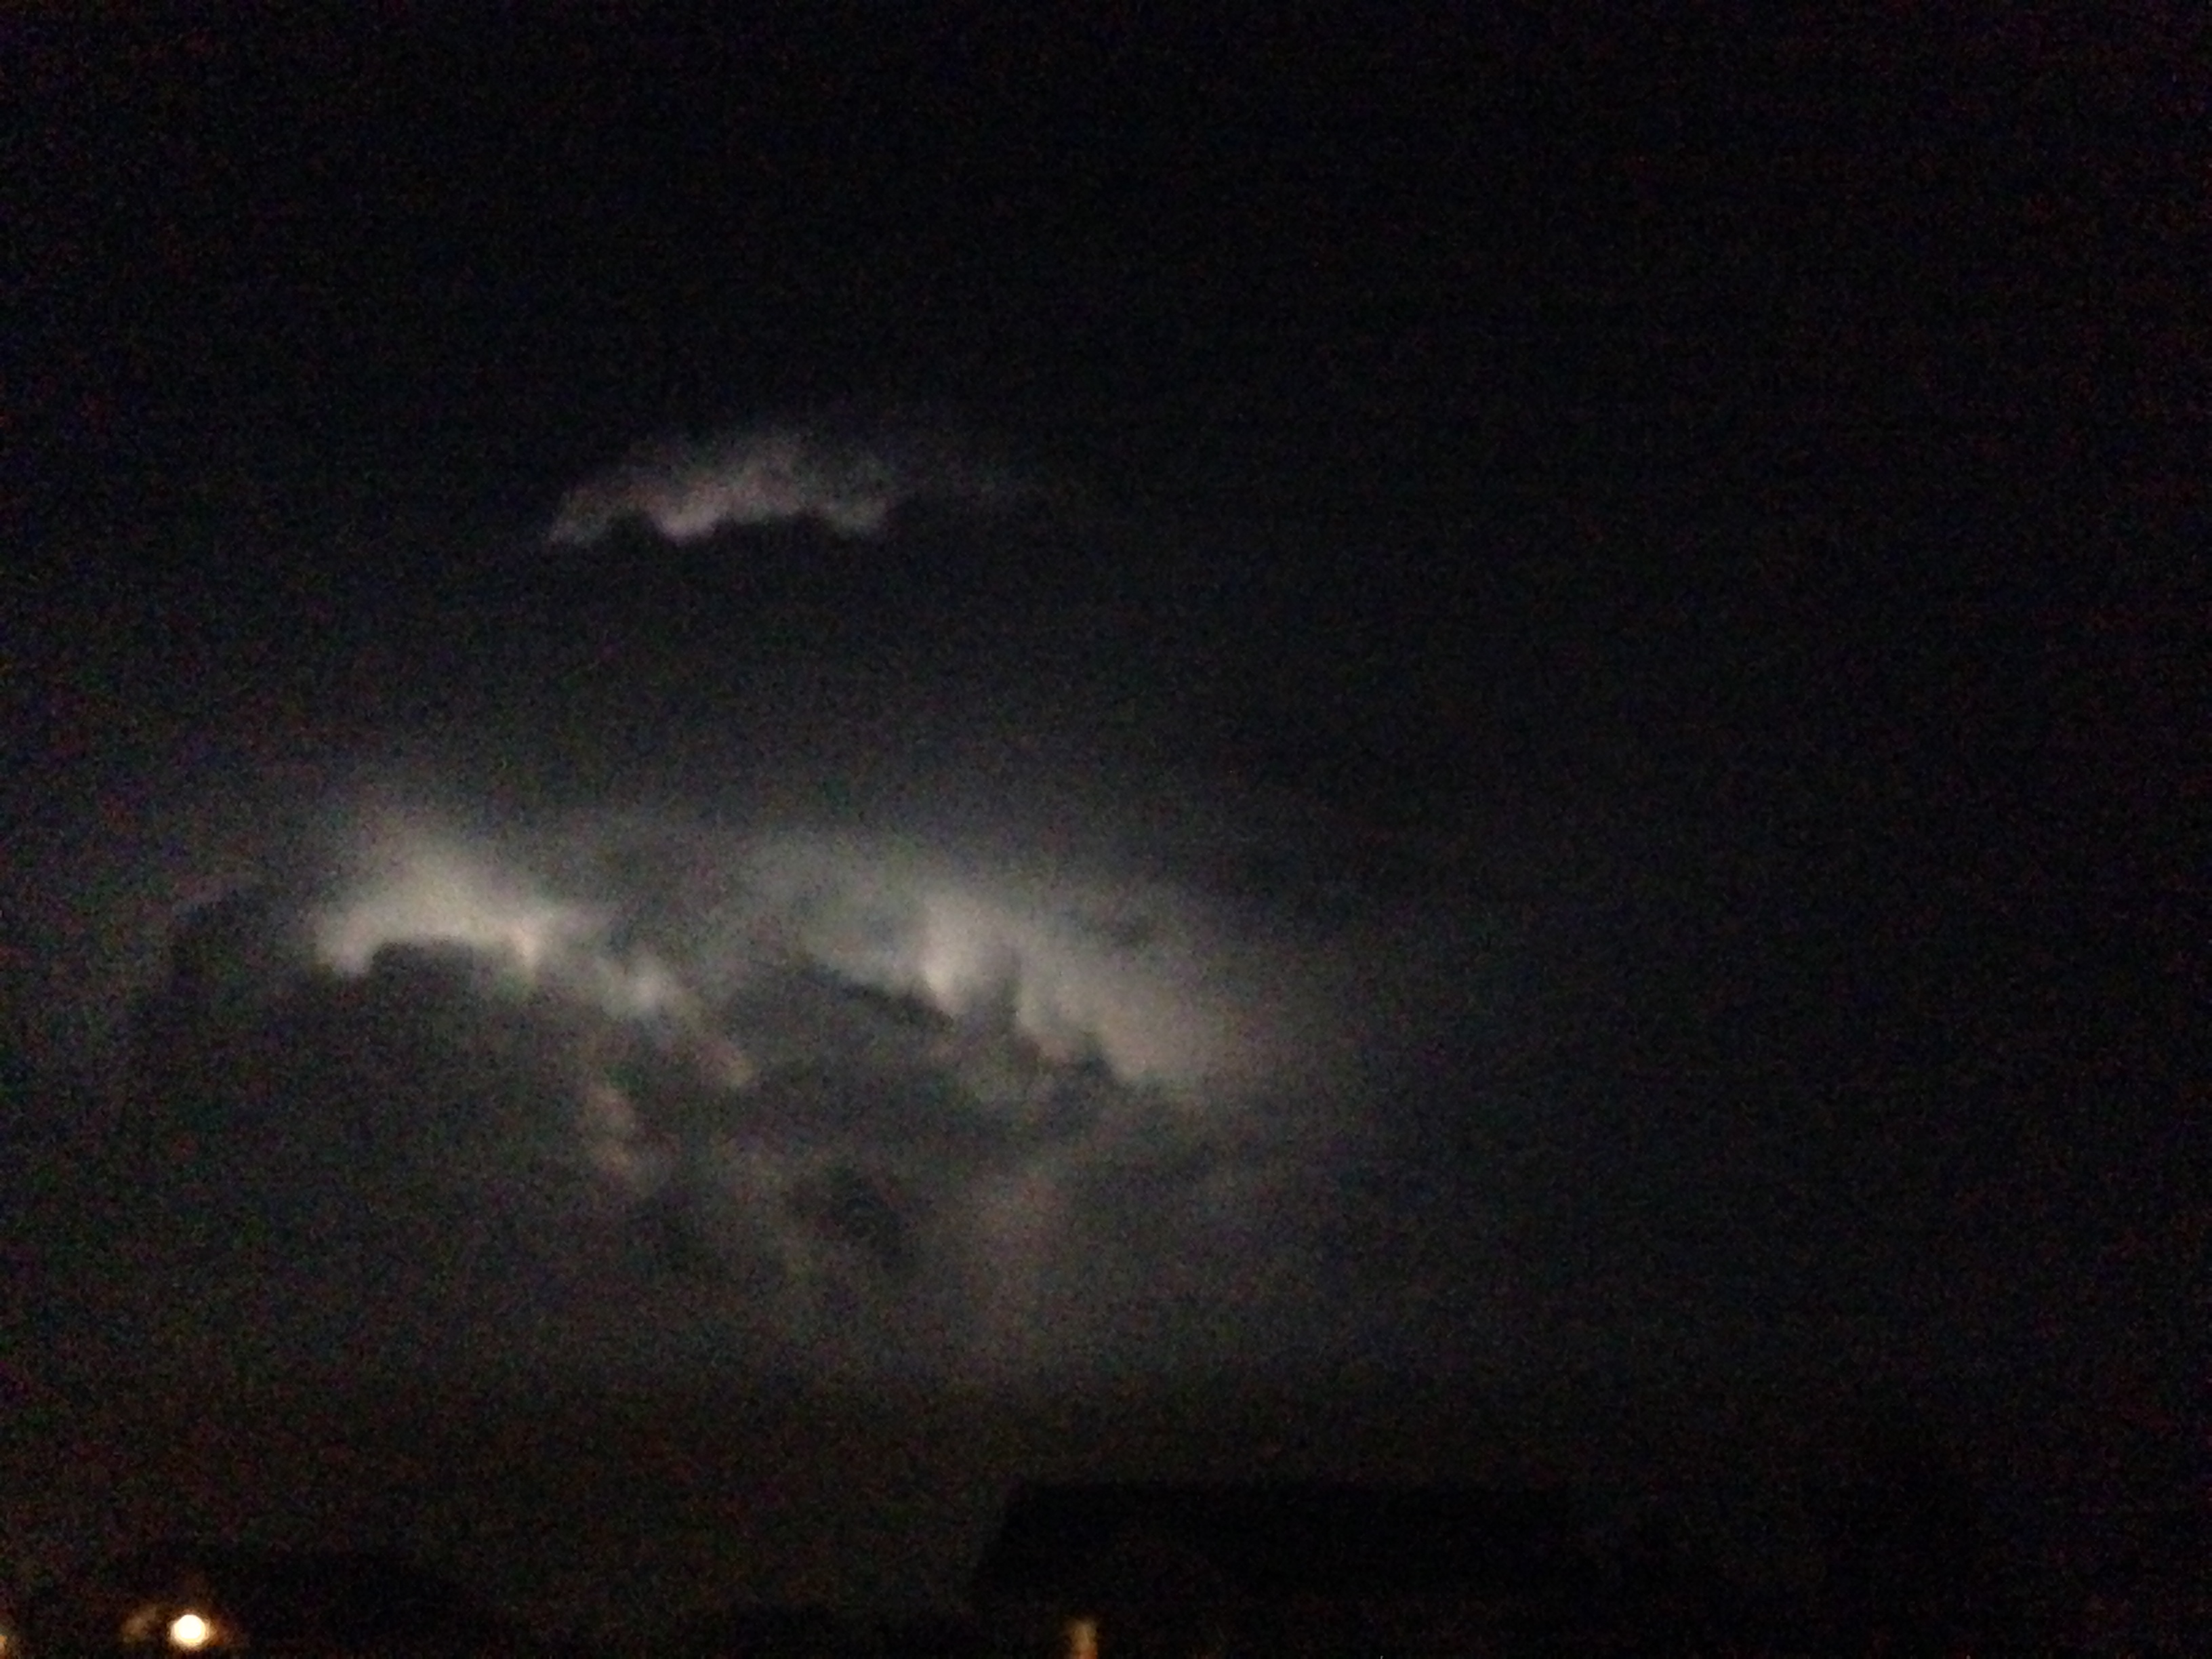 Lightning Behind Cloud At Night Lighting Up Parts Of In The Darkness